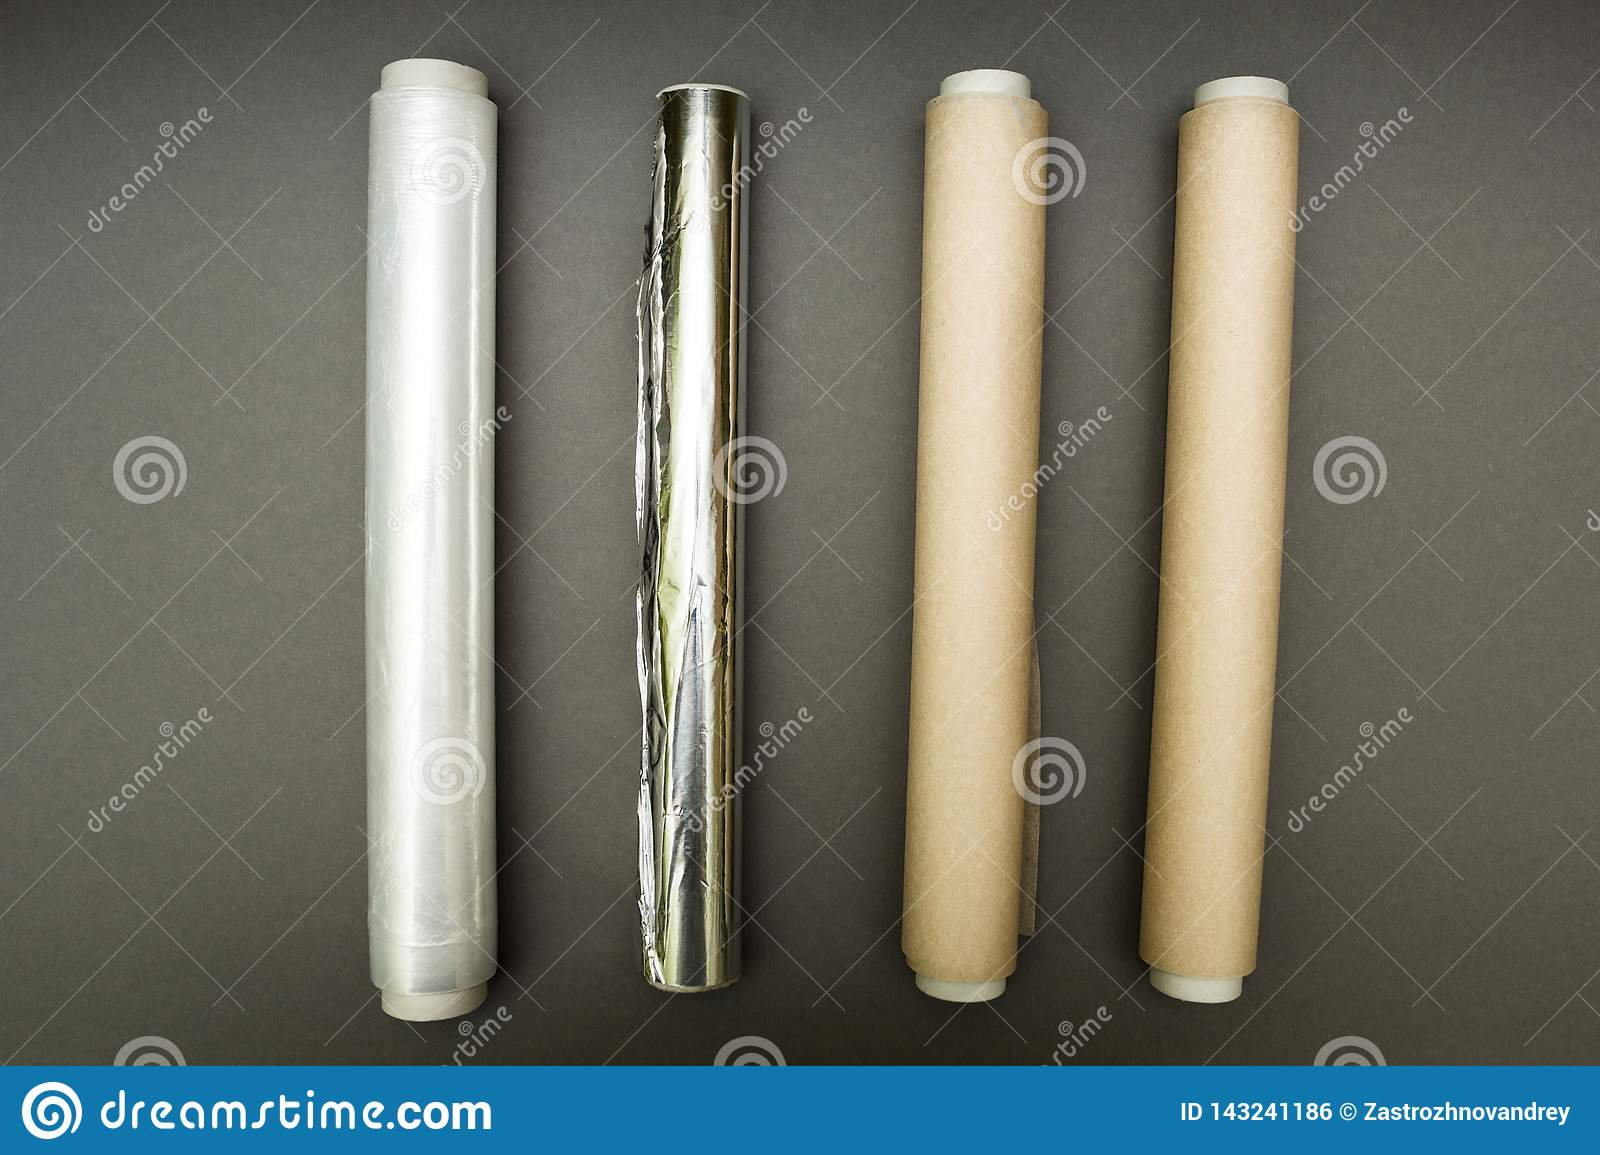 Plastic Wrap, Aluminum Foil And Roll Of Parchment Paper On Grey